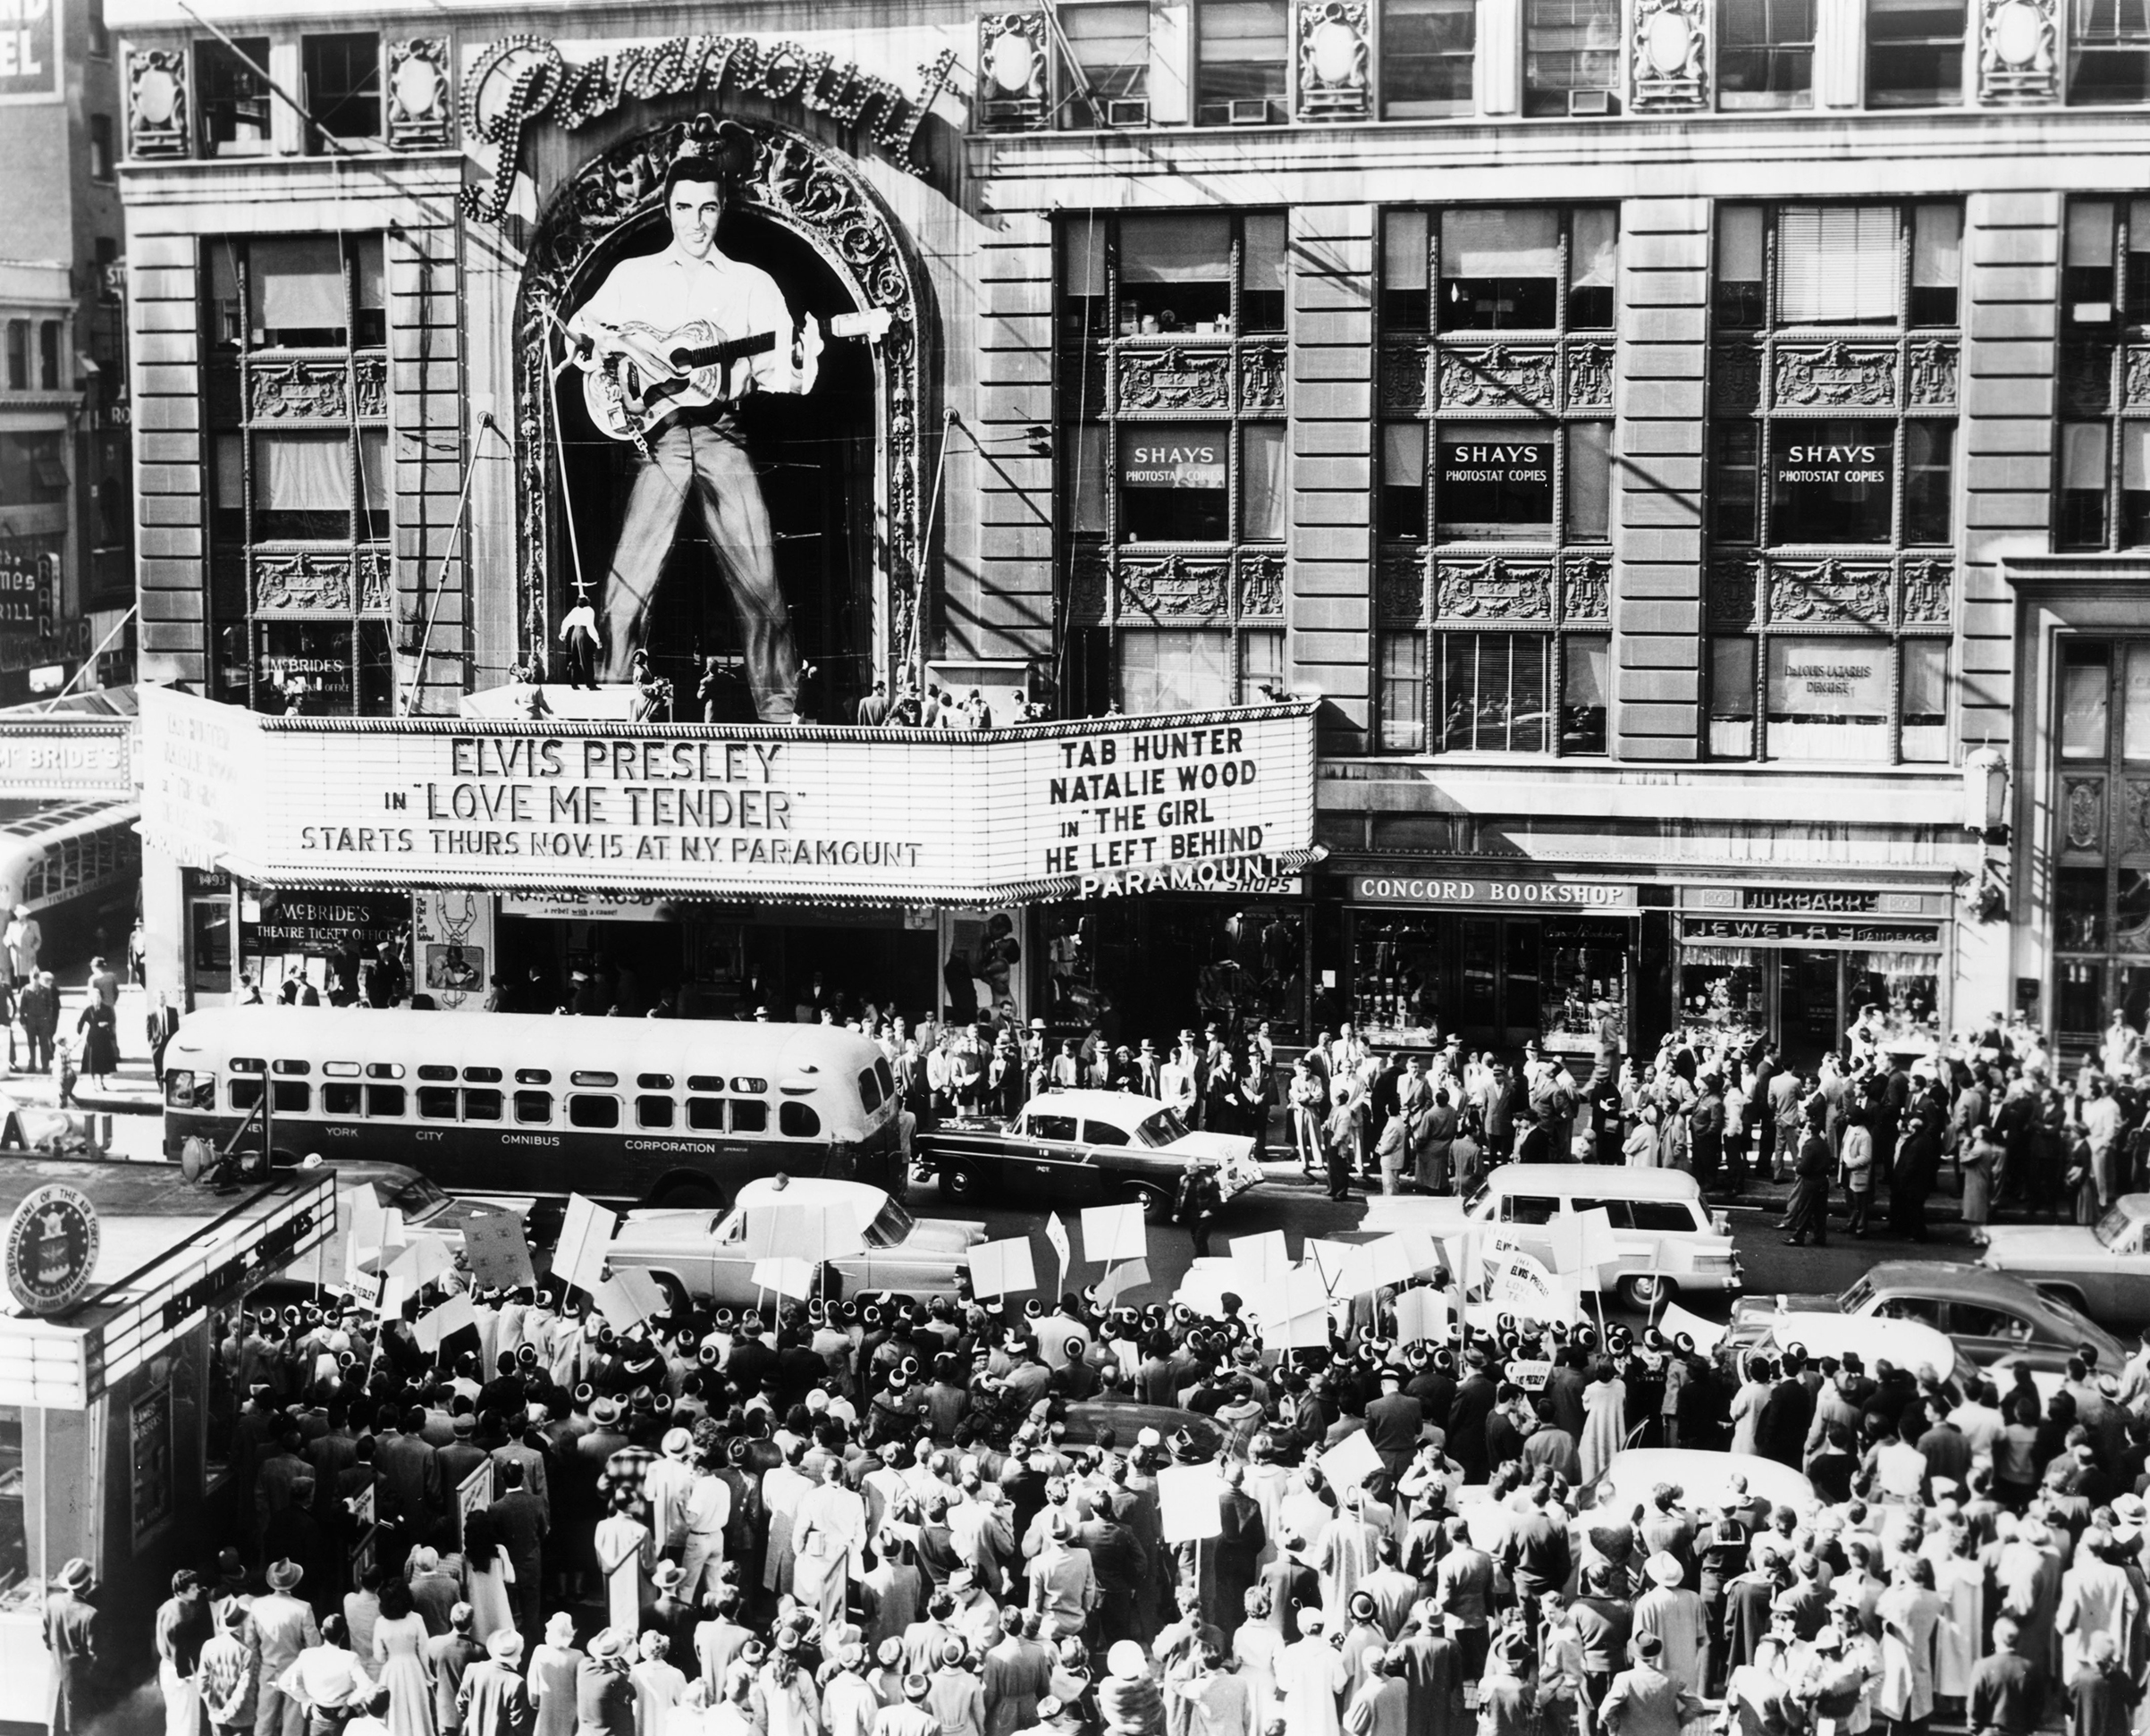 Opening of  Love Me Tender  movie at the Paramount Theater, New York, on Nov. 15, 1956.